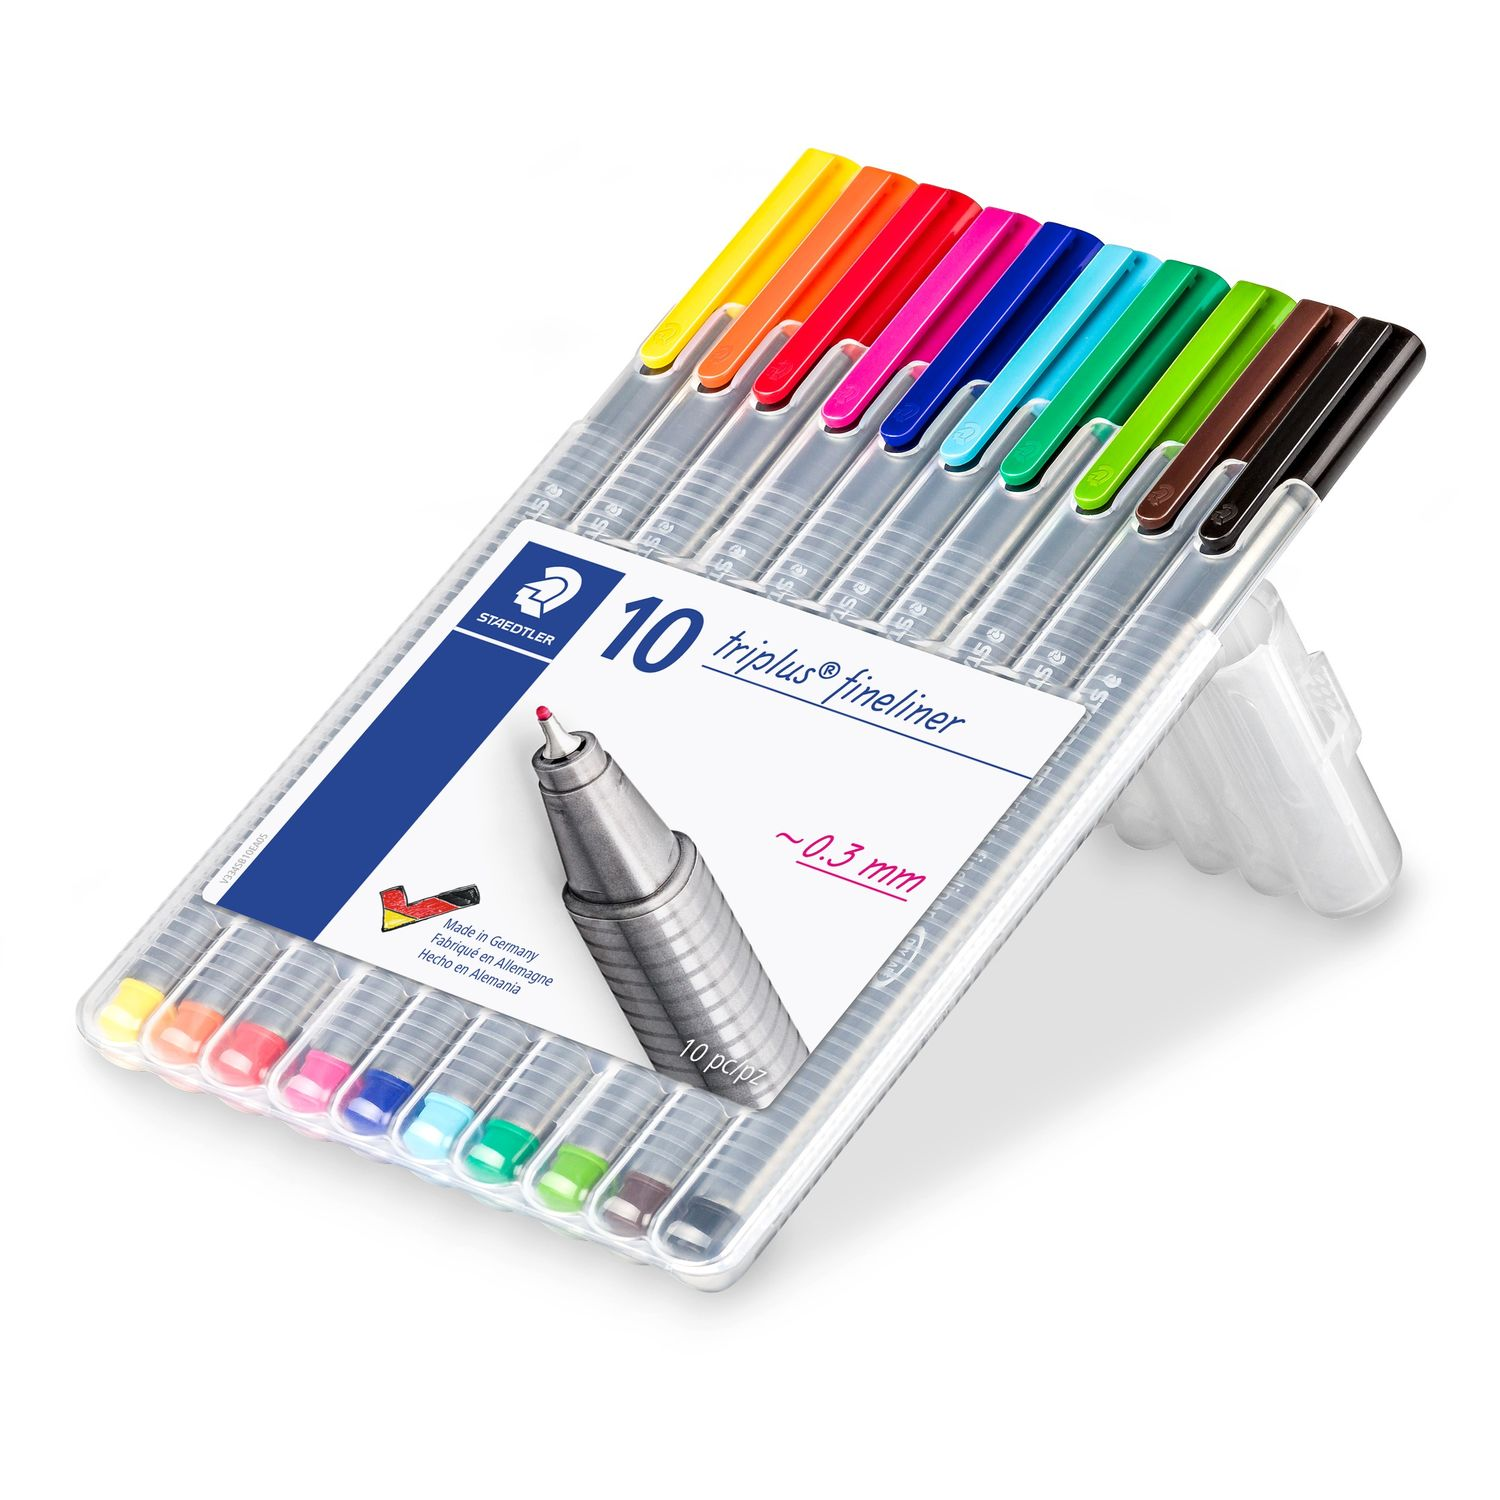 Caneta Fineliner Triplus 10 cores - Staedtler